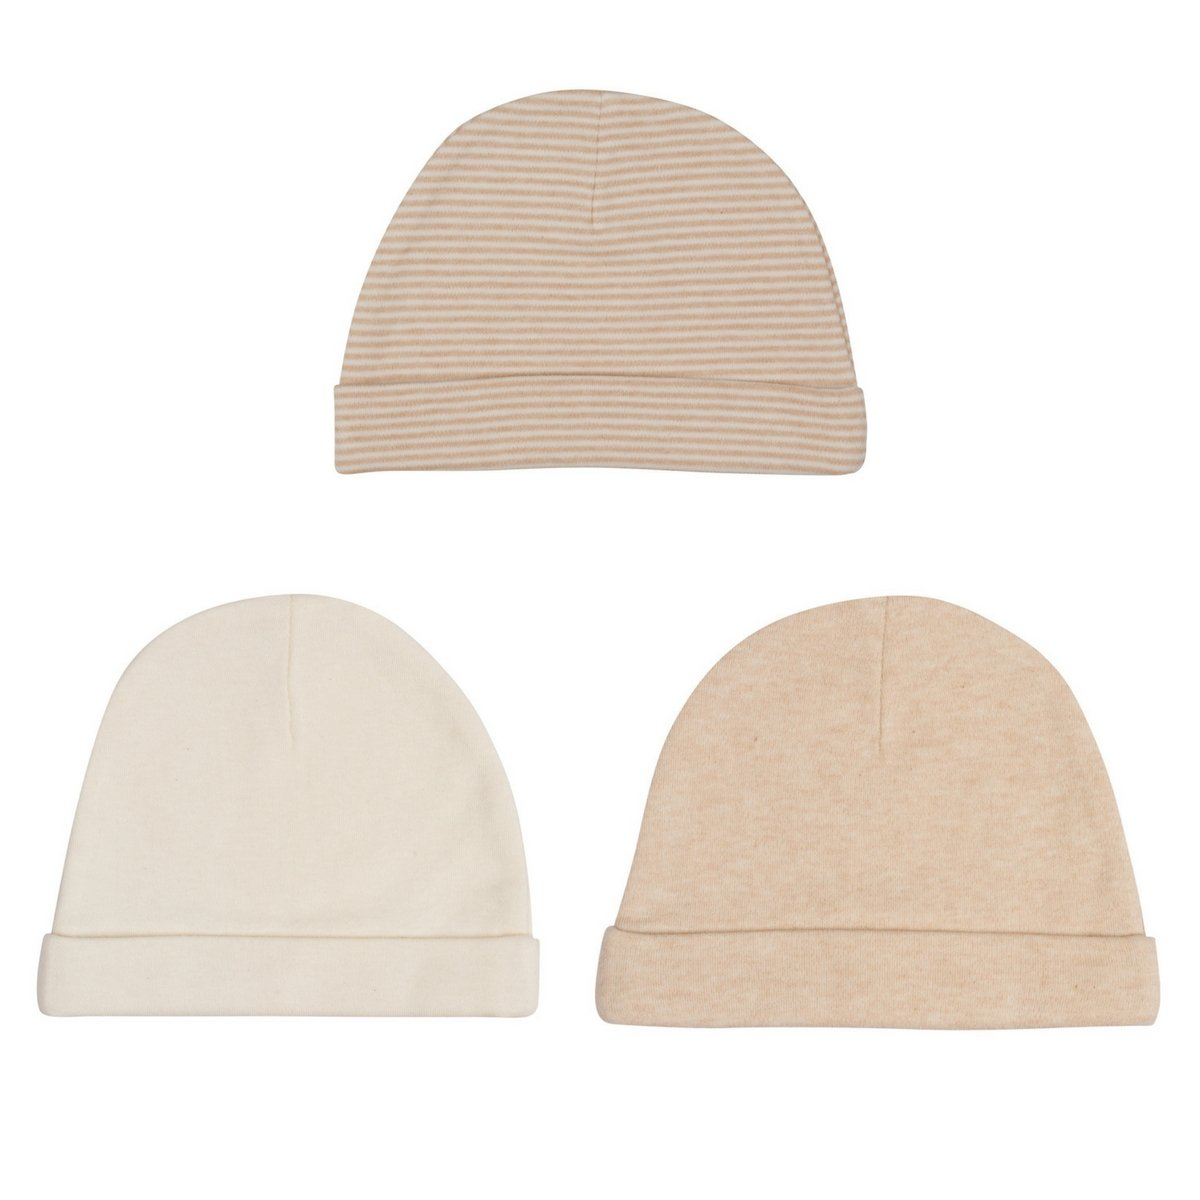 Niteo Organic Cotton Baby Caps, Luxuriously-Soft, All Natural, Dye-Free, 3-Pack, Solid/Pinstripes, 12M